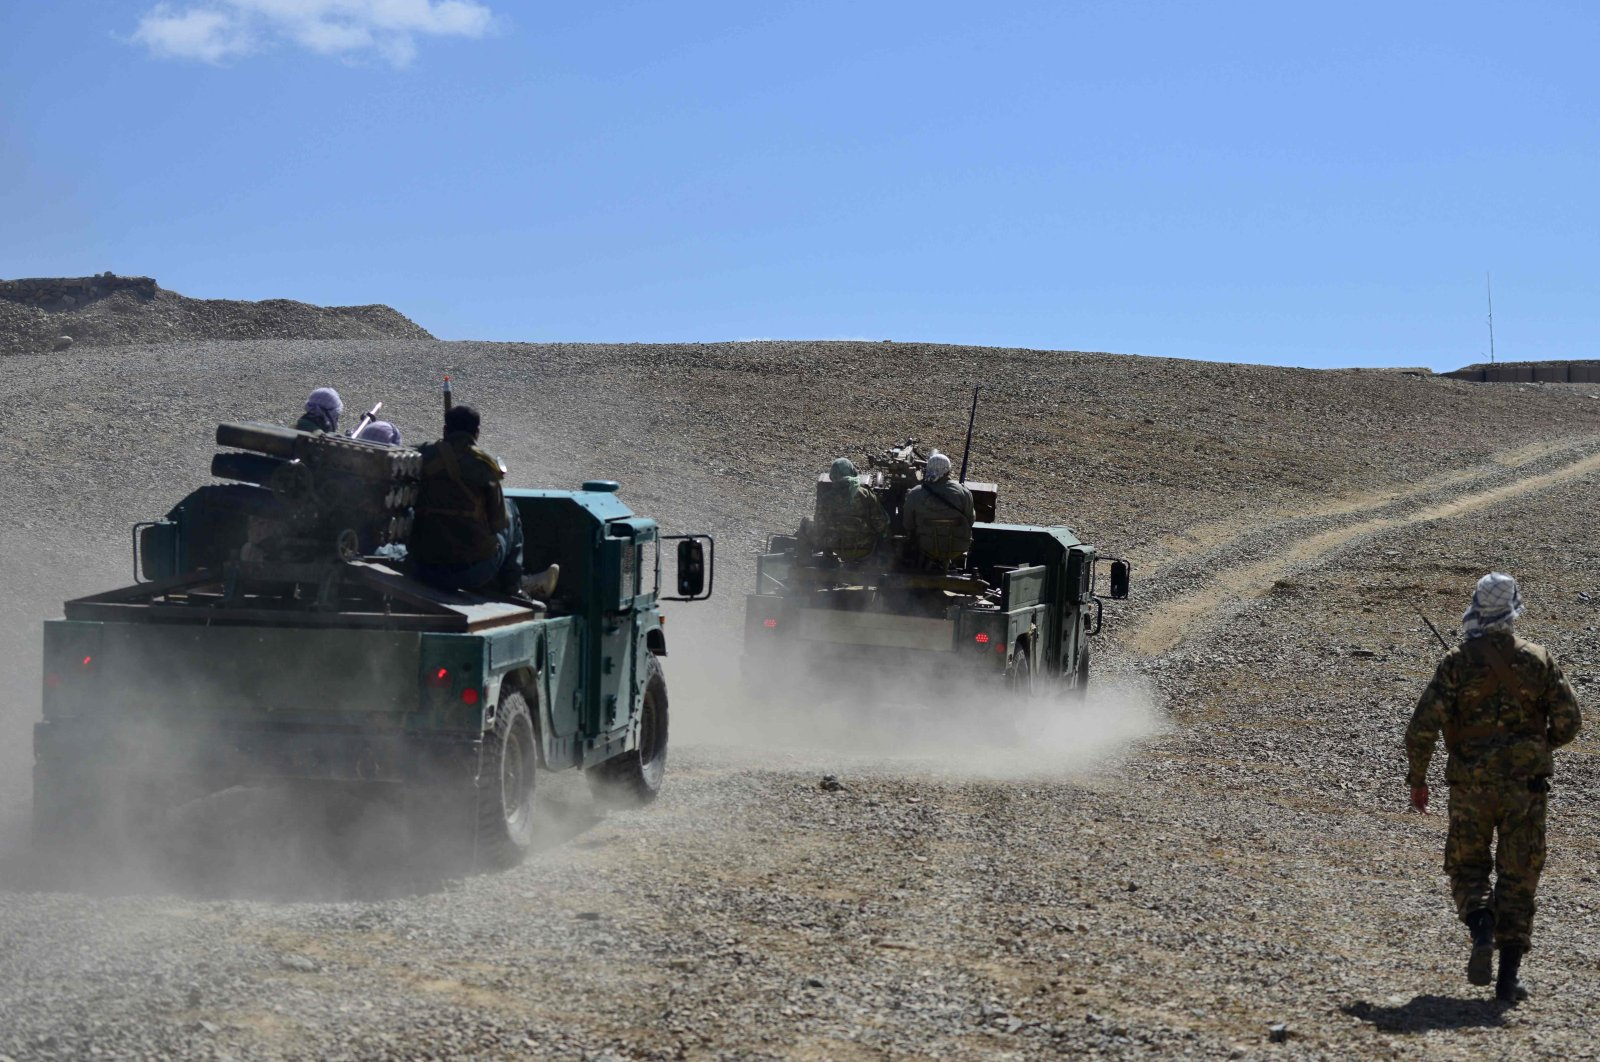 The Afghan resistance movement and anti-Taliban uprising forces personnel patrol in armored humvees at an outpost in Kotal-e Anjuman of the Paryan district in Panjshir province, Afghanistan, Aug. 23, 2021. (AFP Photo)